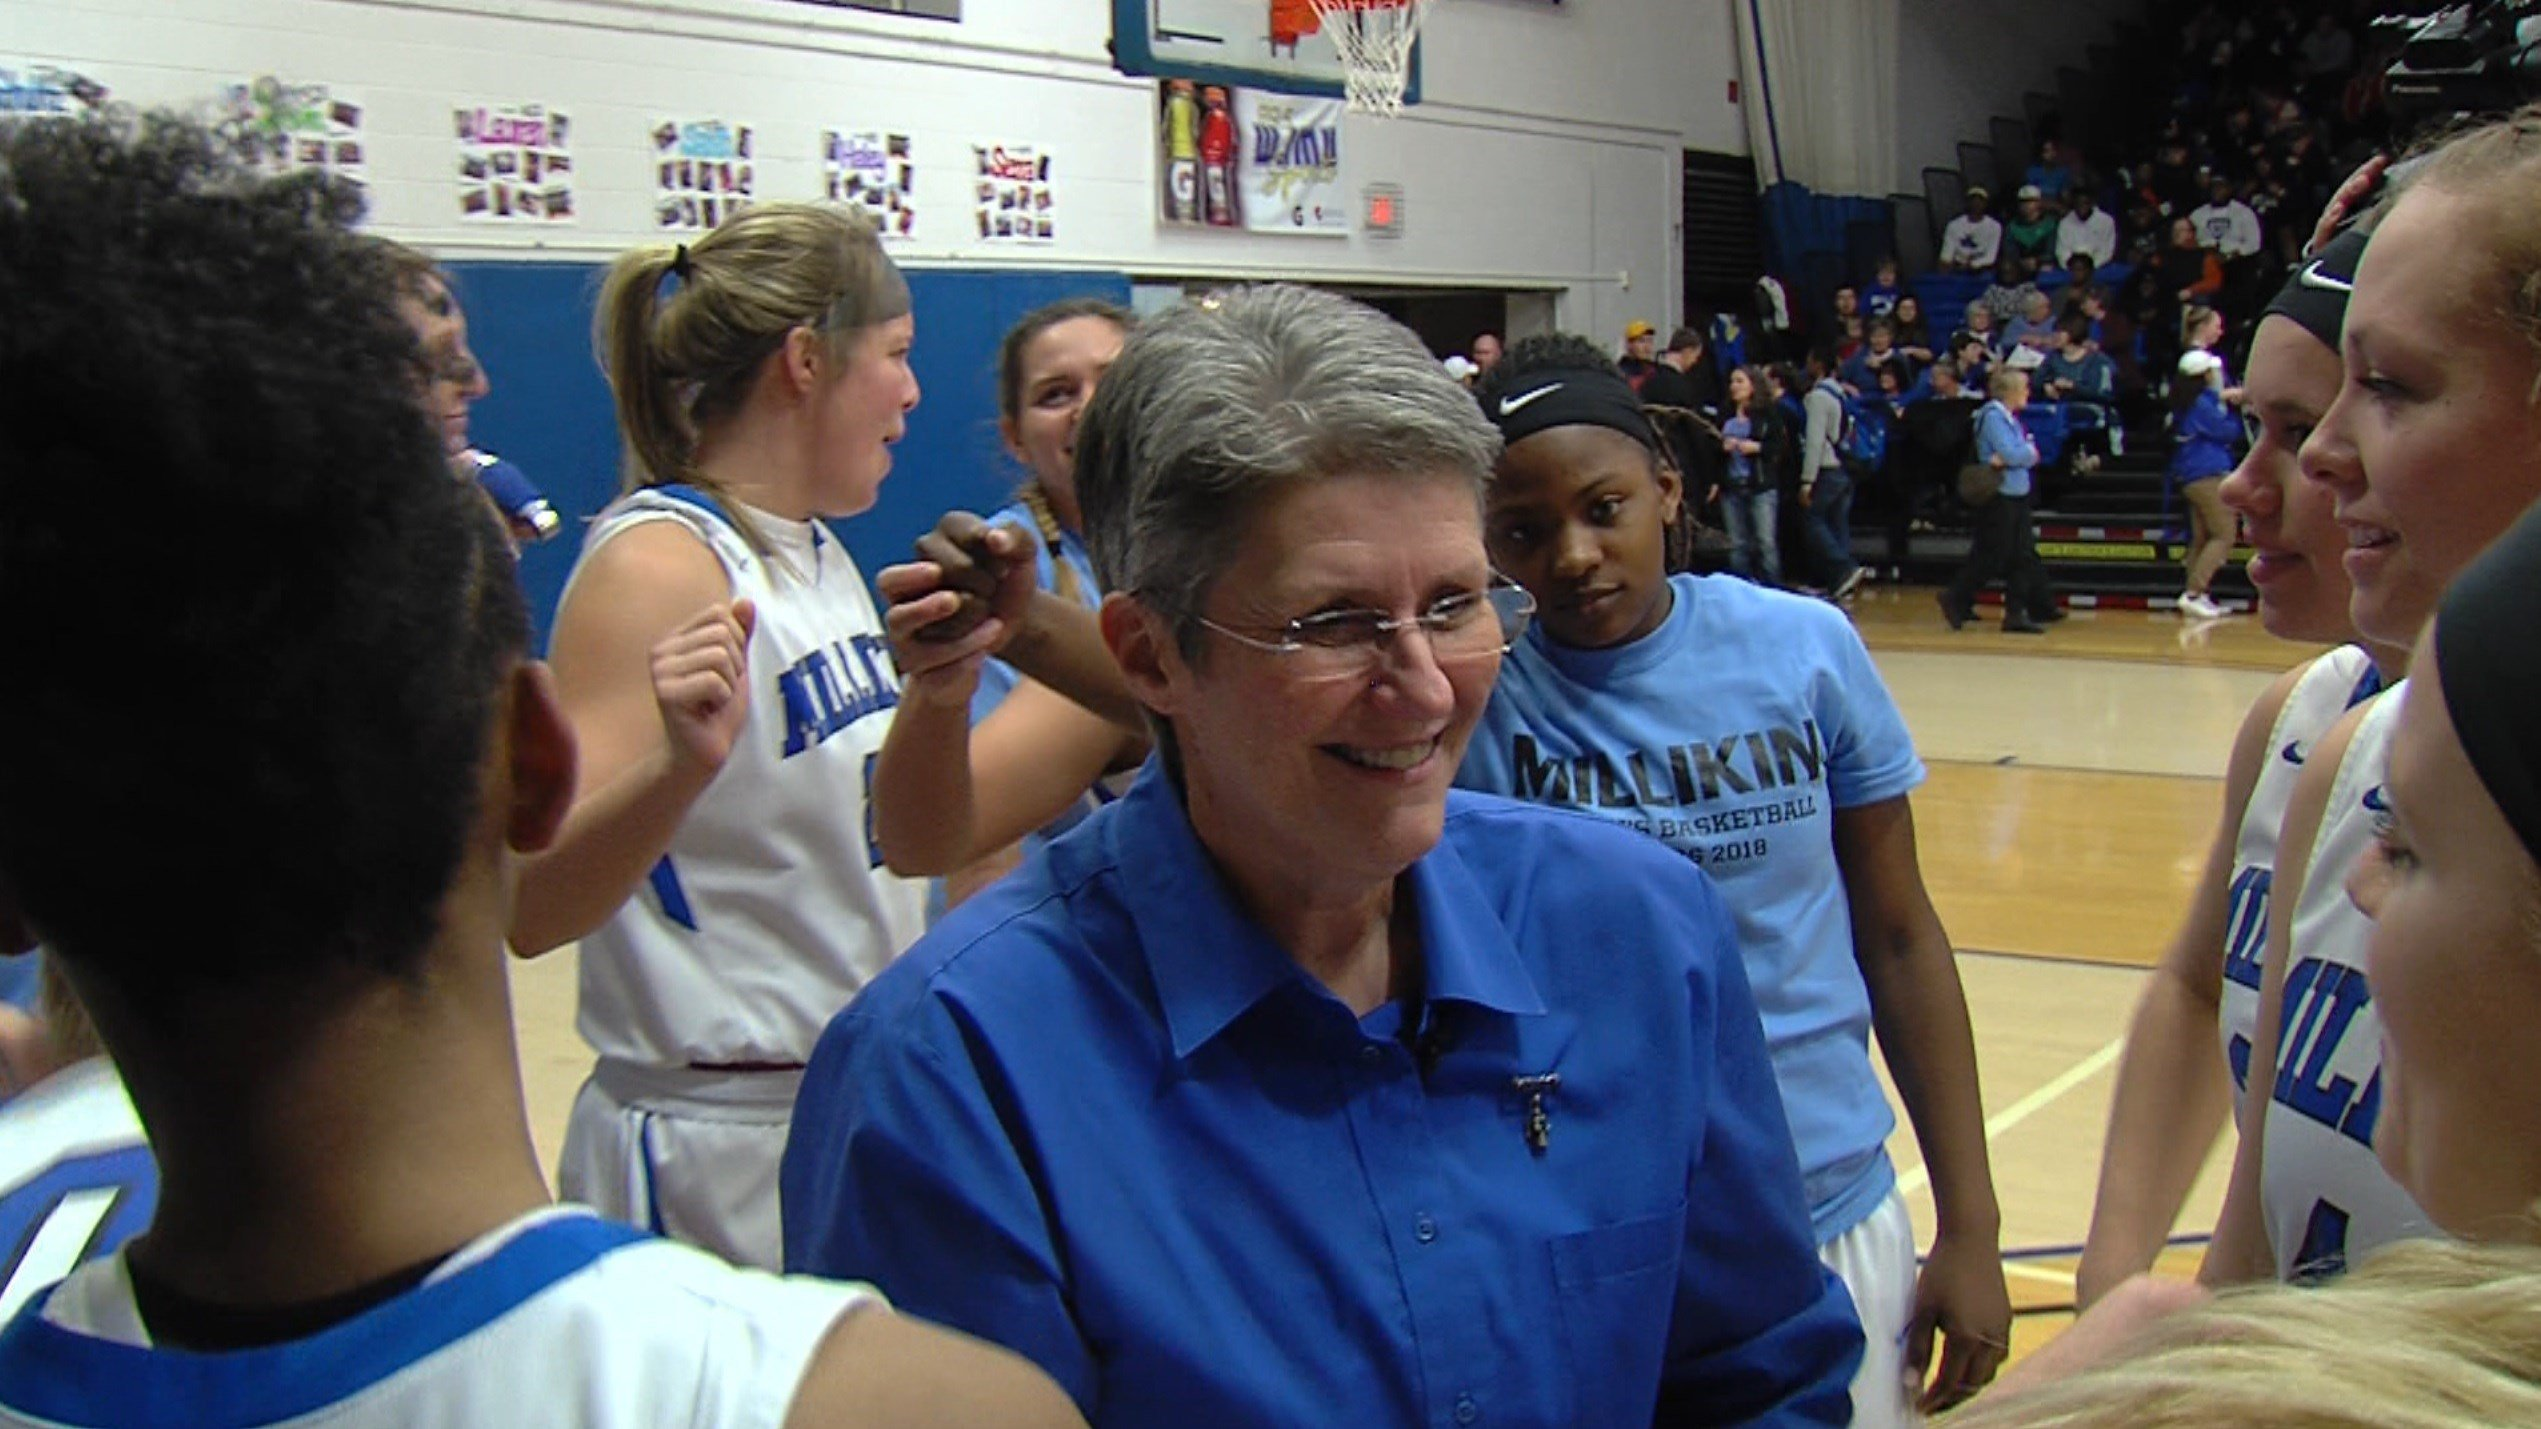 Lori Kerans notched her 556th career win by racing past North Park 85-66 on Tuesday night, her final leading the Big Blue program after 32 years at the helm.